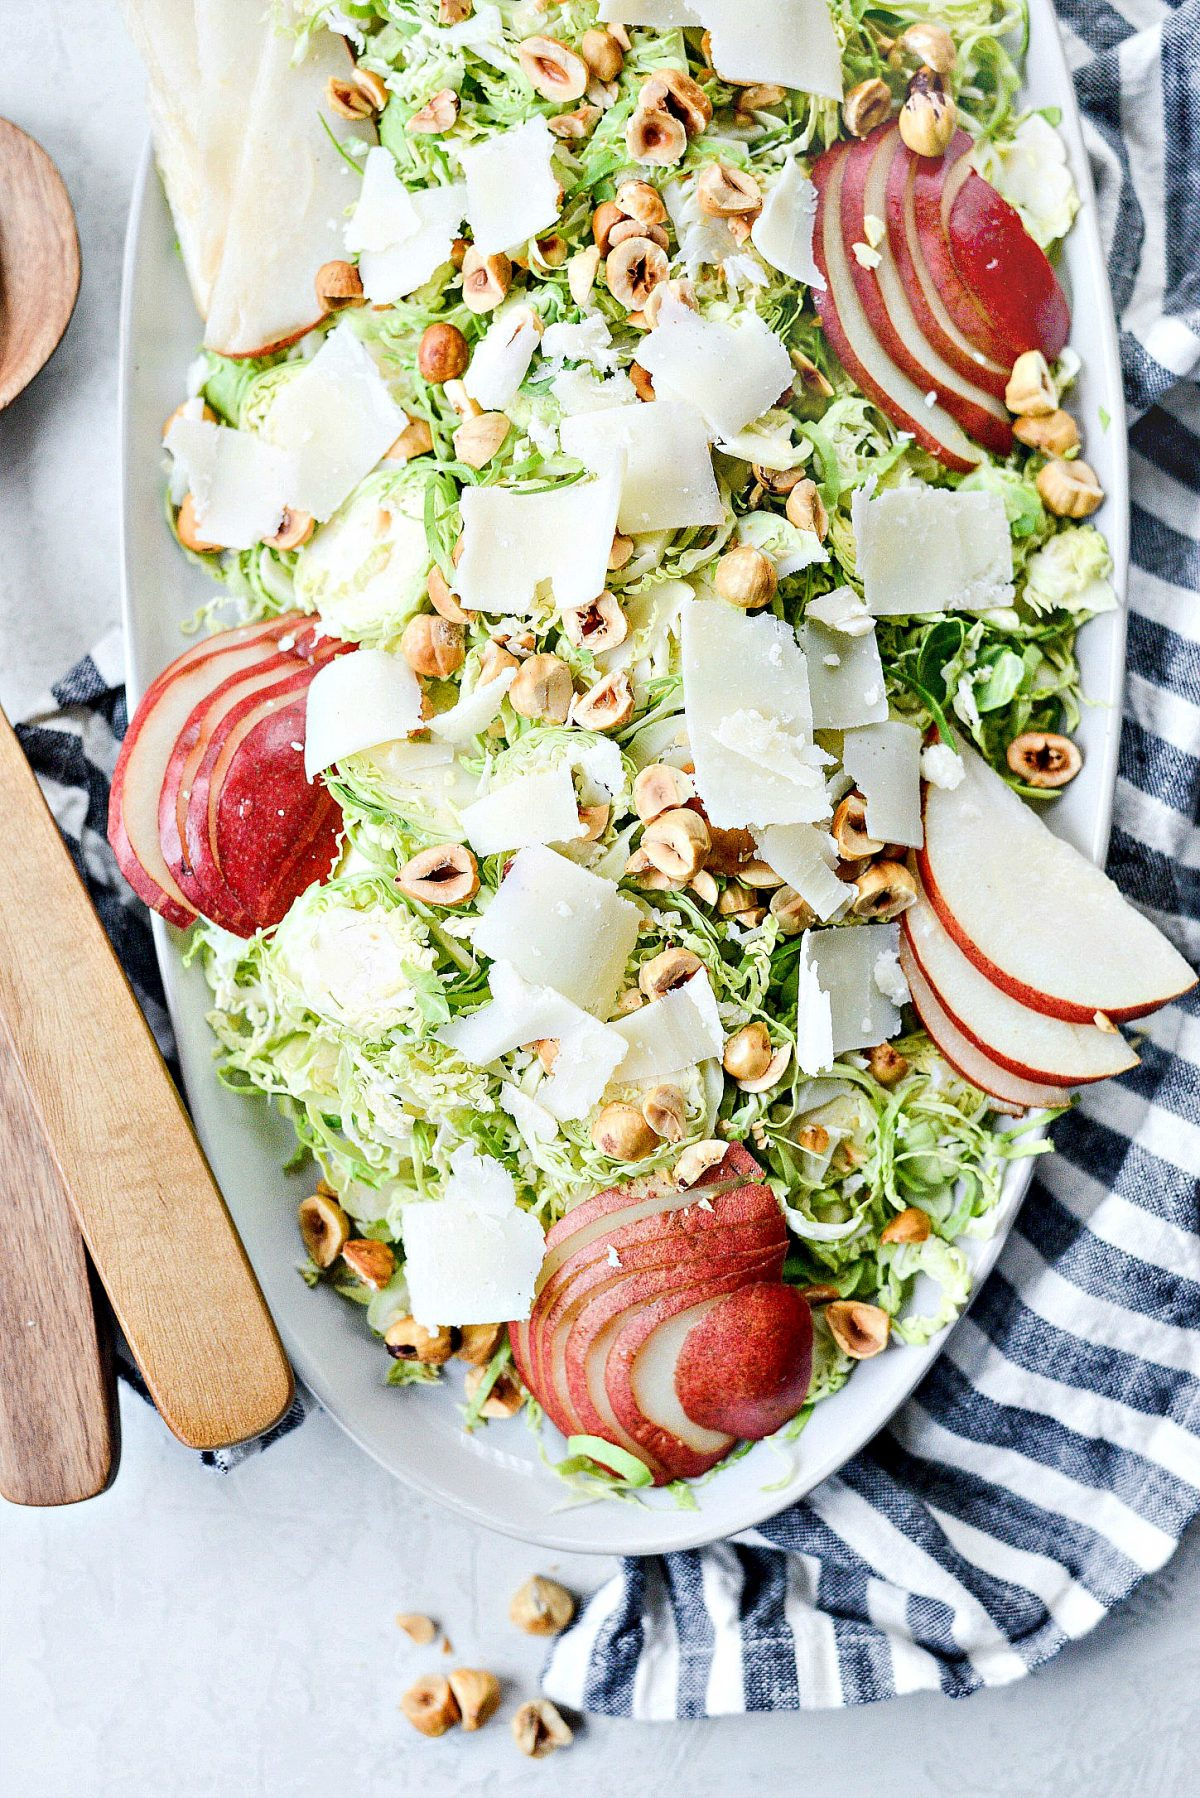 Shaved-Brussels-Sprout-Salad-with-Pear-Parmesan-and-Hazelnuts-l-SimplyScratch.com-8